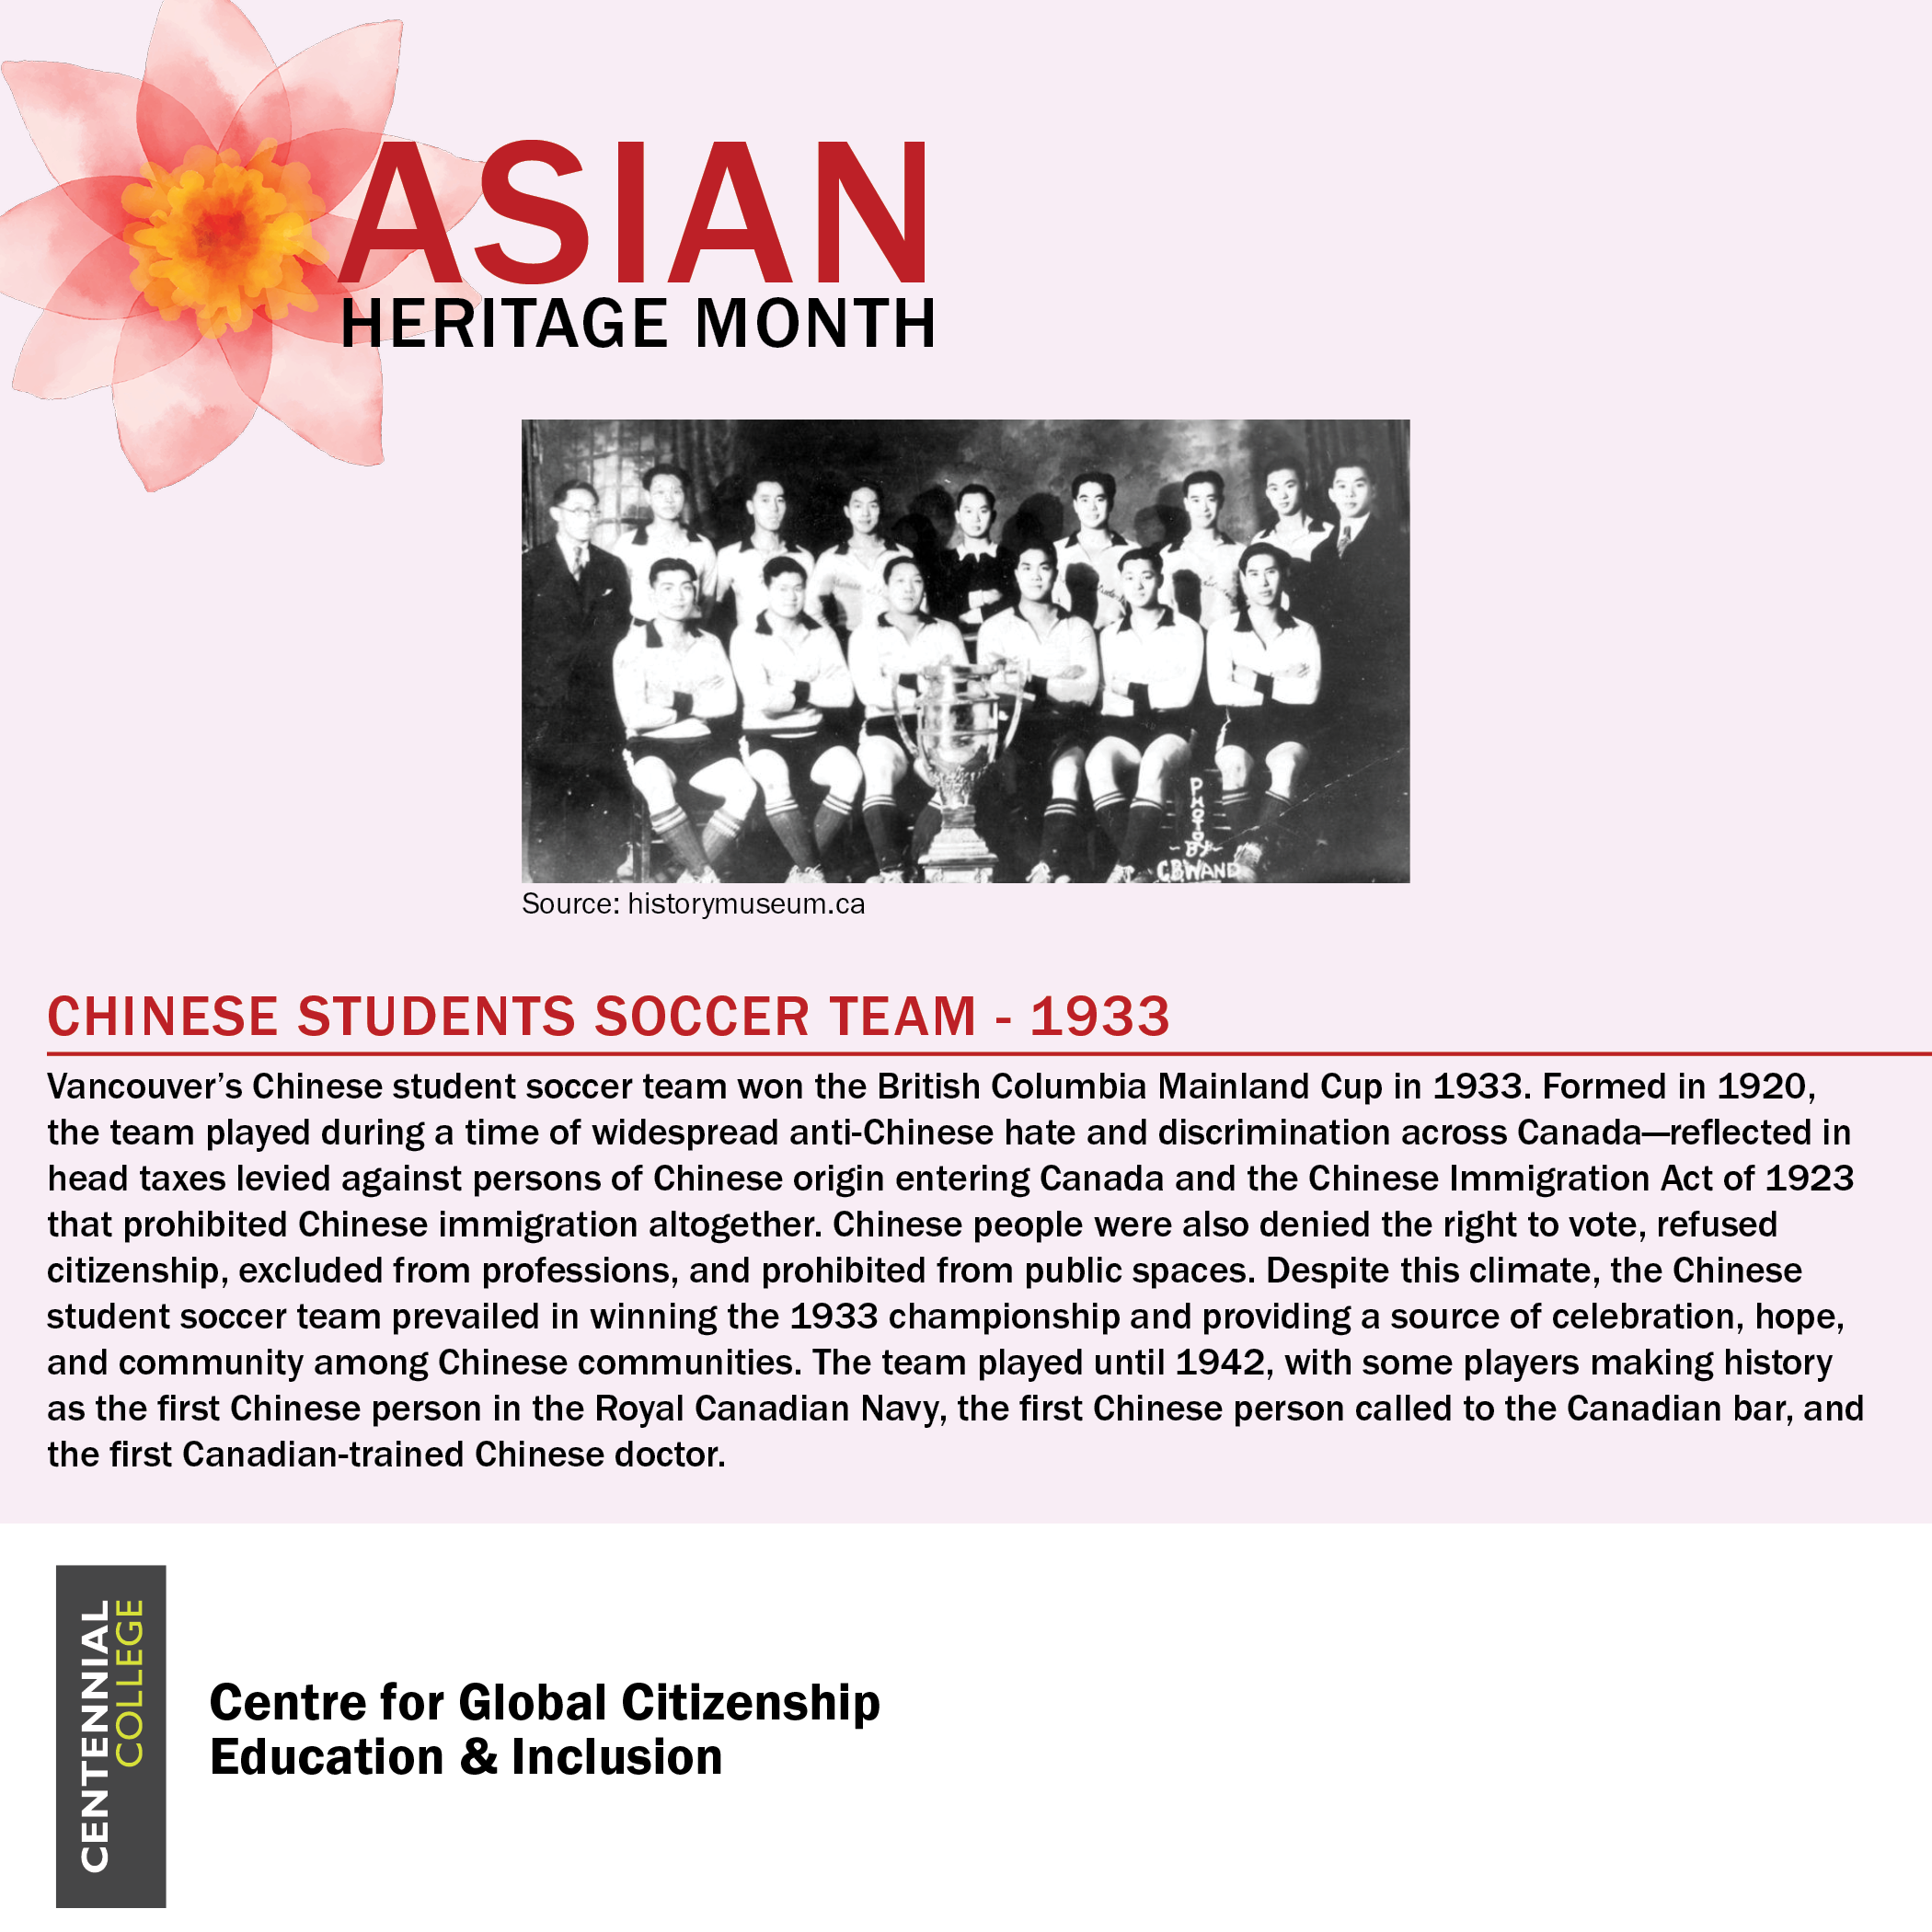 Asian Heritage month spotlight on the Chinese Students Soccer Team from 1933. There is a photo of the team with a large trophy, accompanied by the following text : Vancouver's Chinese student stoccer team won the British Columbia Mainland Cup in 1933. Formed in 1920, the team played during a time of widespread anti-Chinese hate and discrimination across Canada - reflected in head taxes levied against persons of Chinese origin entering Canada and the Chinese Immigration Act of 1923 that prohibited Chinese immigration altogether. Chinese people were also denied the right to vote, refused citizenship, excluded from professions, and prohibited from public spaces. Despite this climate, the Chinses student soccer team prevailed in winning the 1933 championship and providing a source of celebration, hope, and community among Chinese communities. The team played until 1942, with some players making history as the first Chinese person in the Royal Canadian Navy, the first Chinese person called to the Canadian bar, and the first Canadian-trained Chinese doctor.